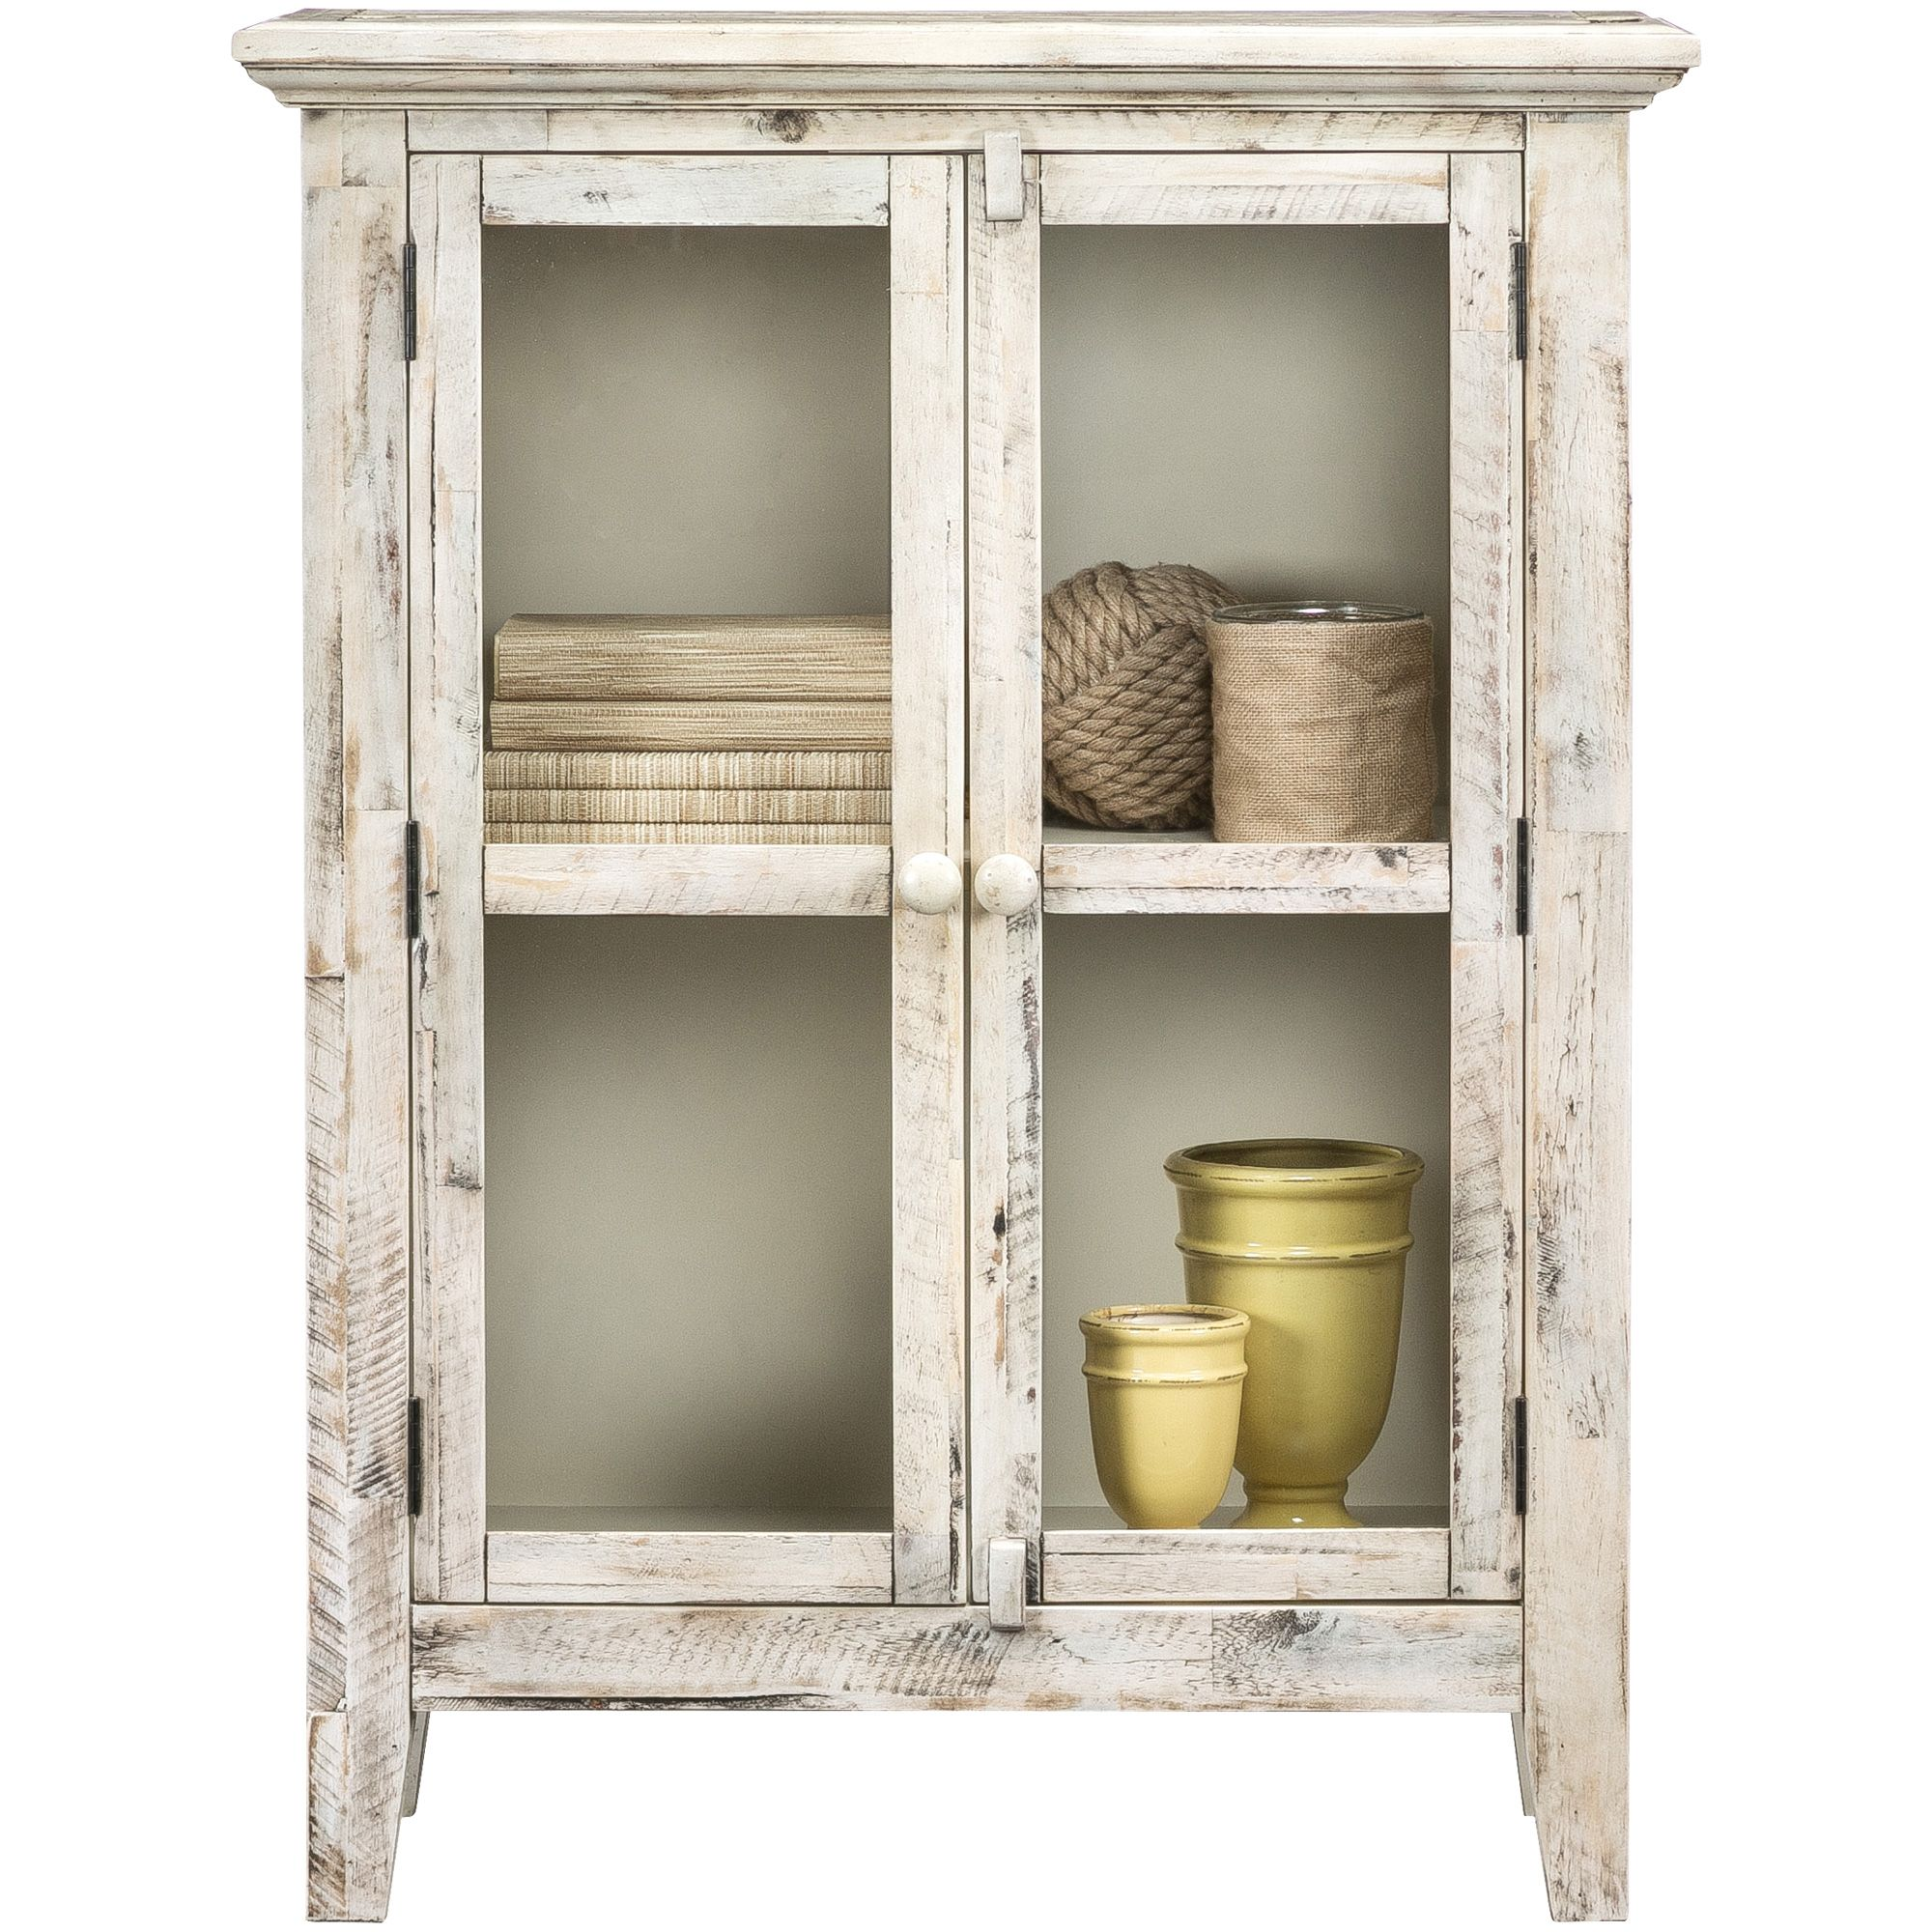 Rustic Shores Antique White 2 Door Glass